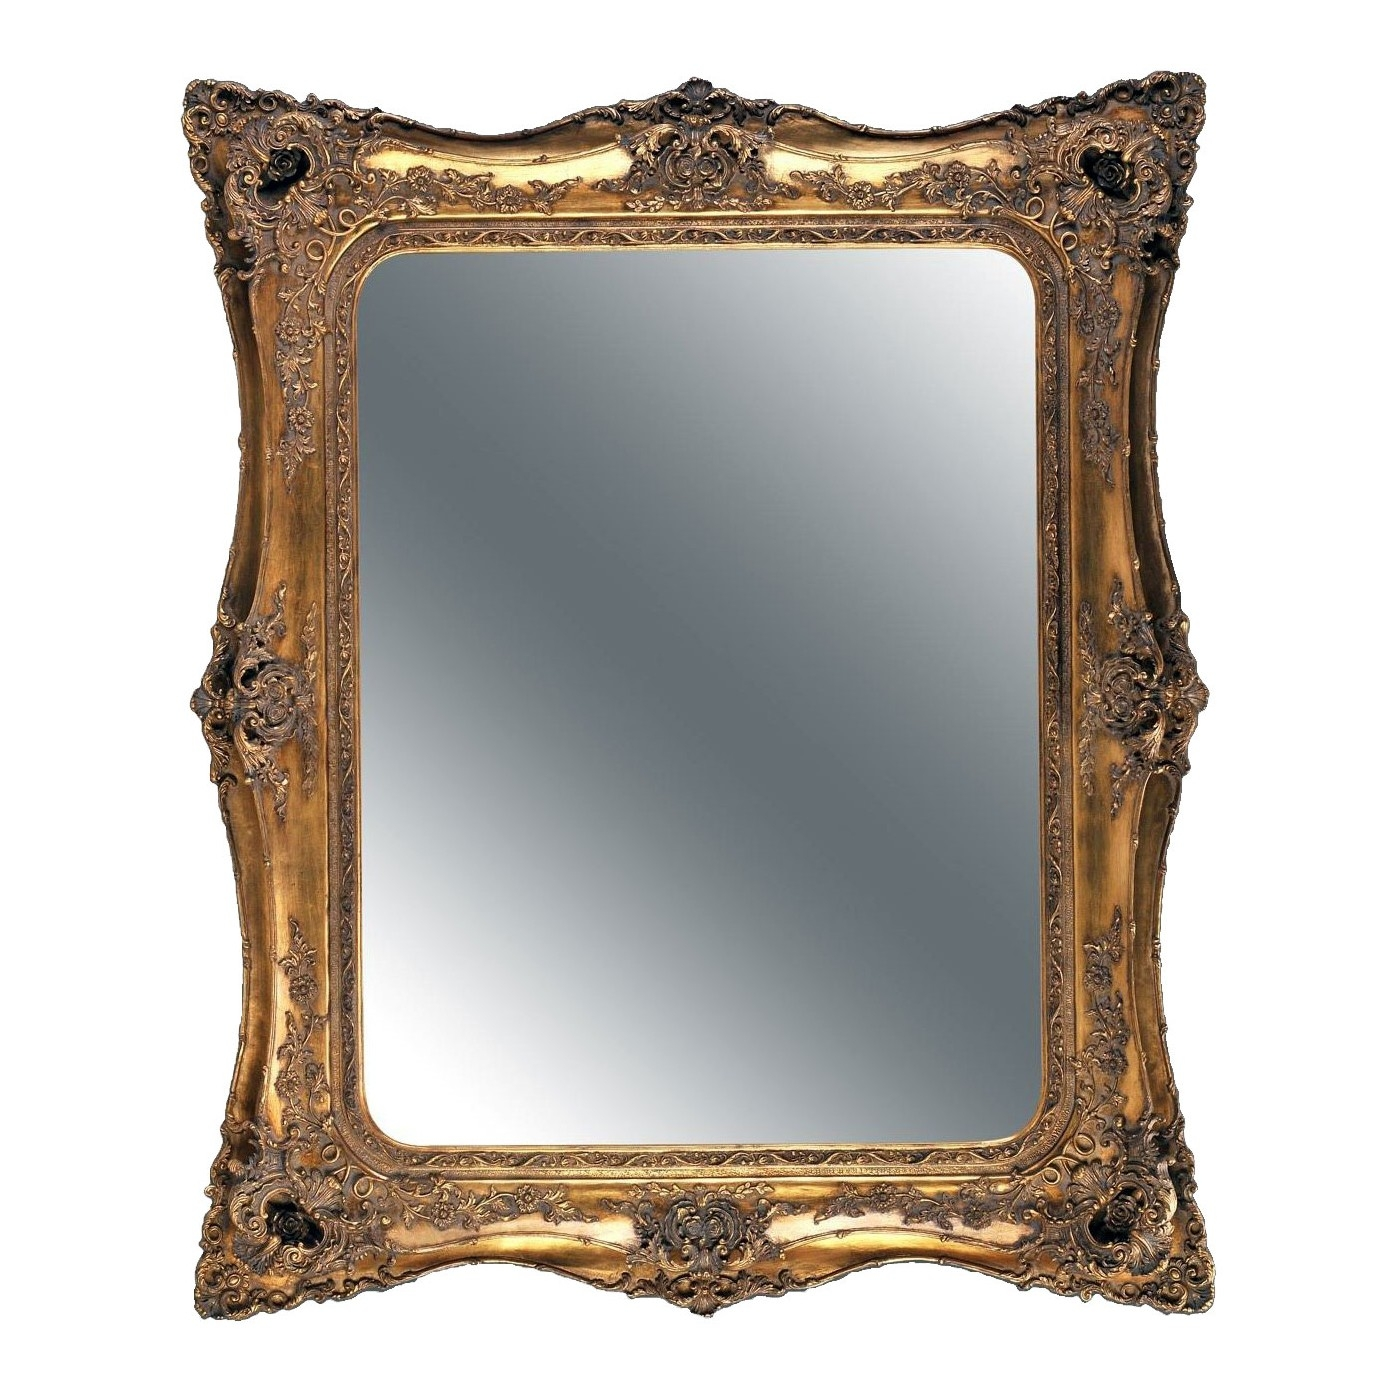 Featured Image of Gold Ornate Mirror